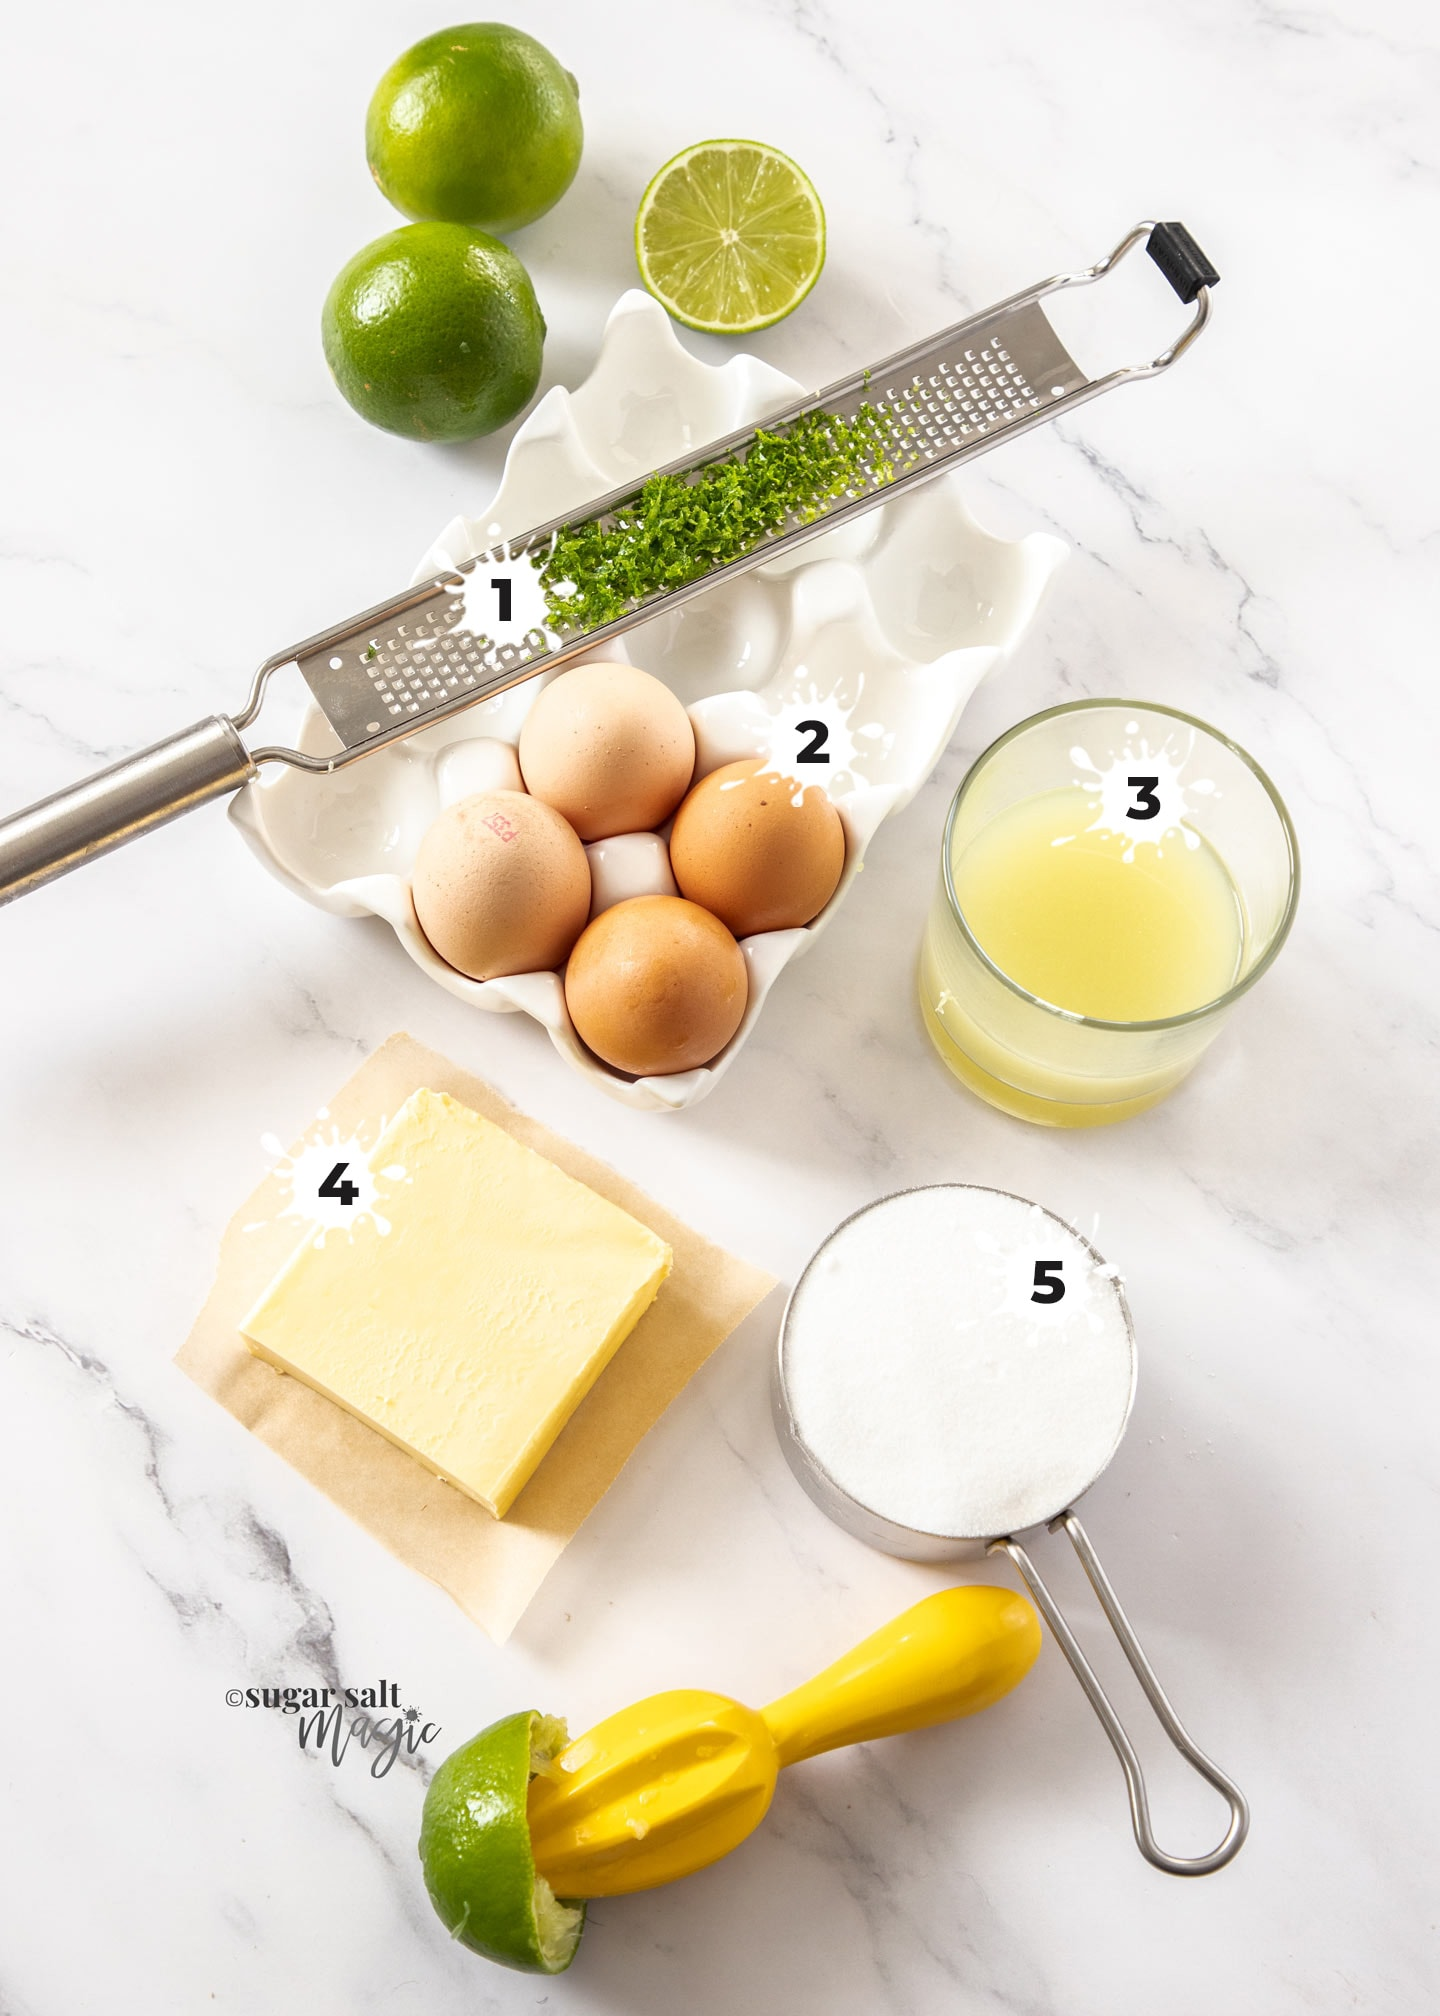 Ingredients for lime curd on a marble surface